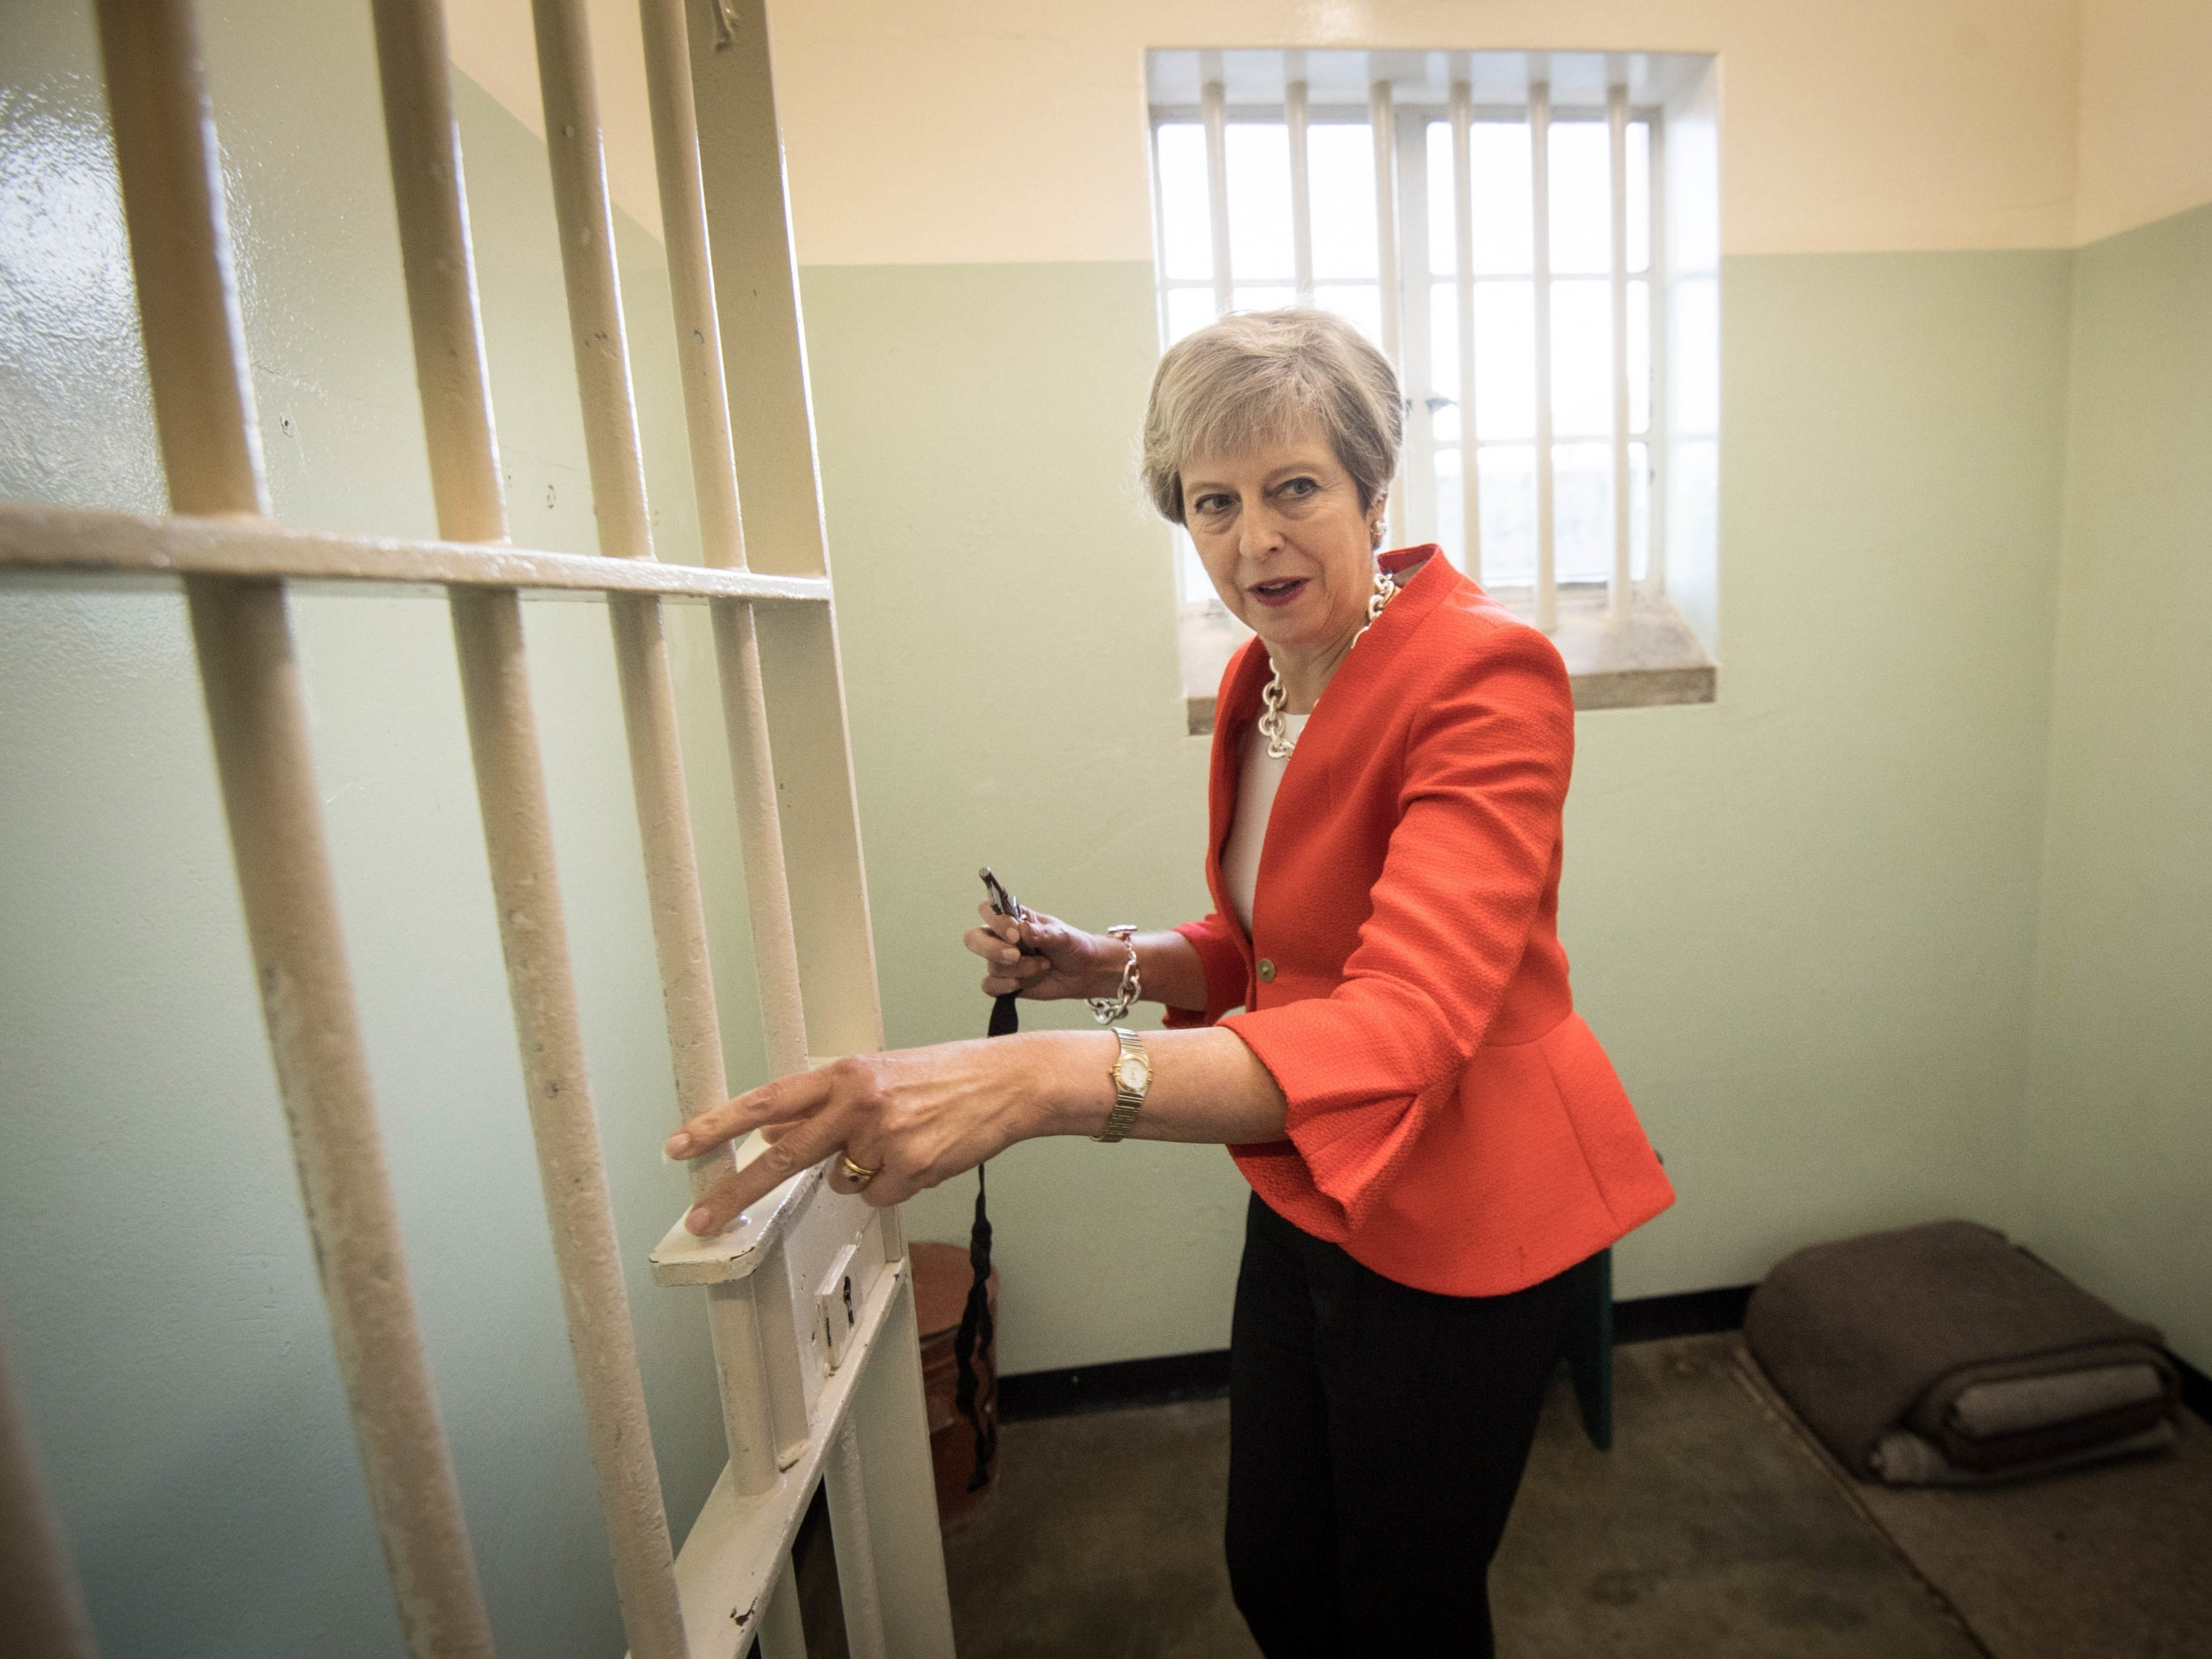 What Theresa May said in South Africa is an insult to everyone who protested apartheid